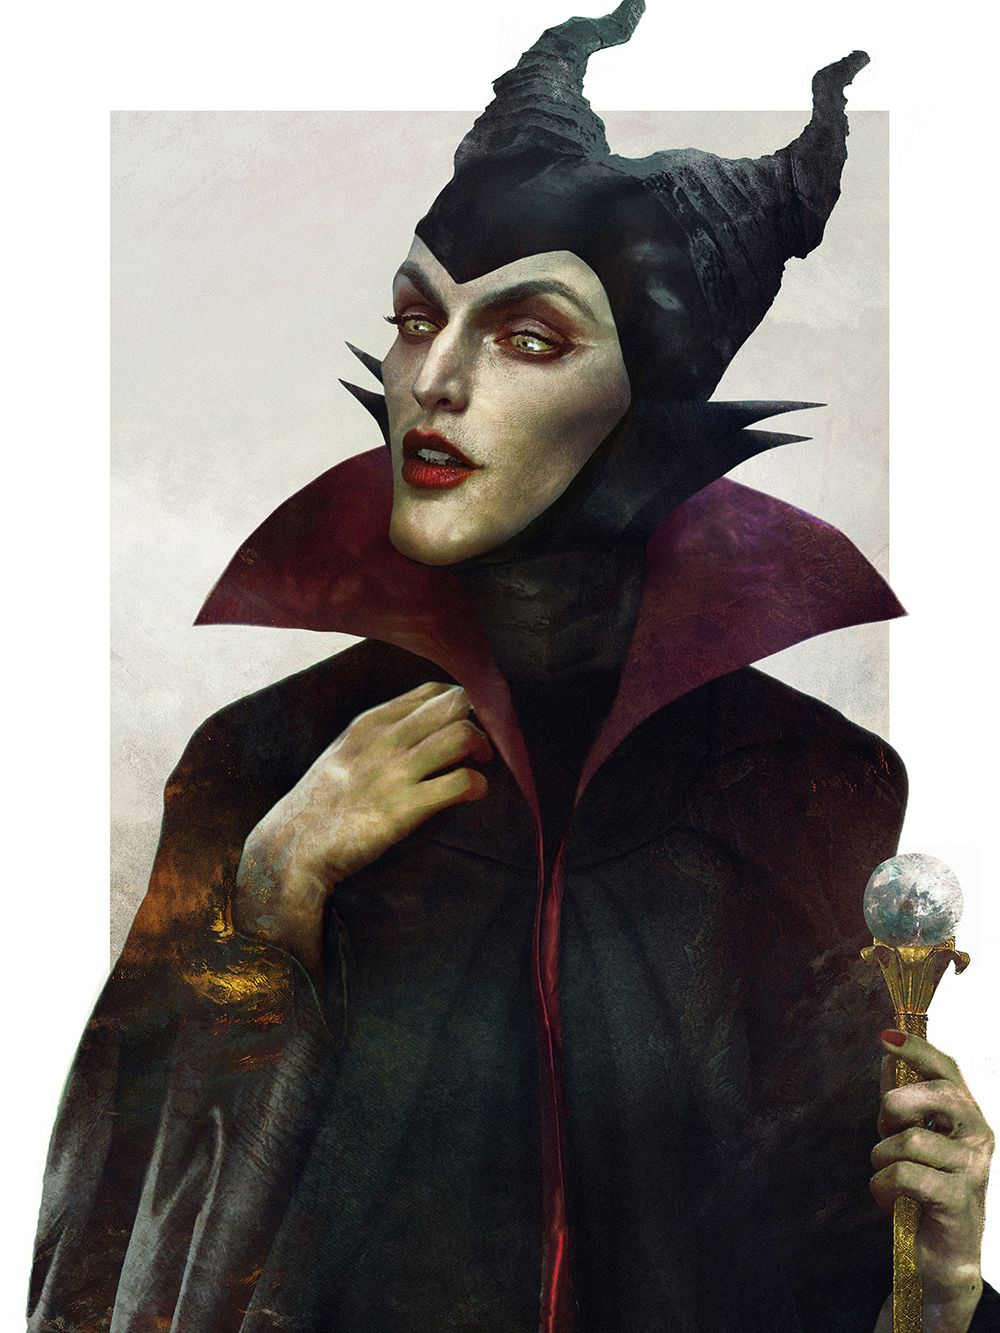 Pieces Of Eerily Realistic Disney Villains Artwork Disney - Artist brings disney villains to life in eerily realistic illustrations